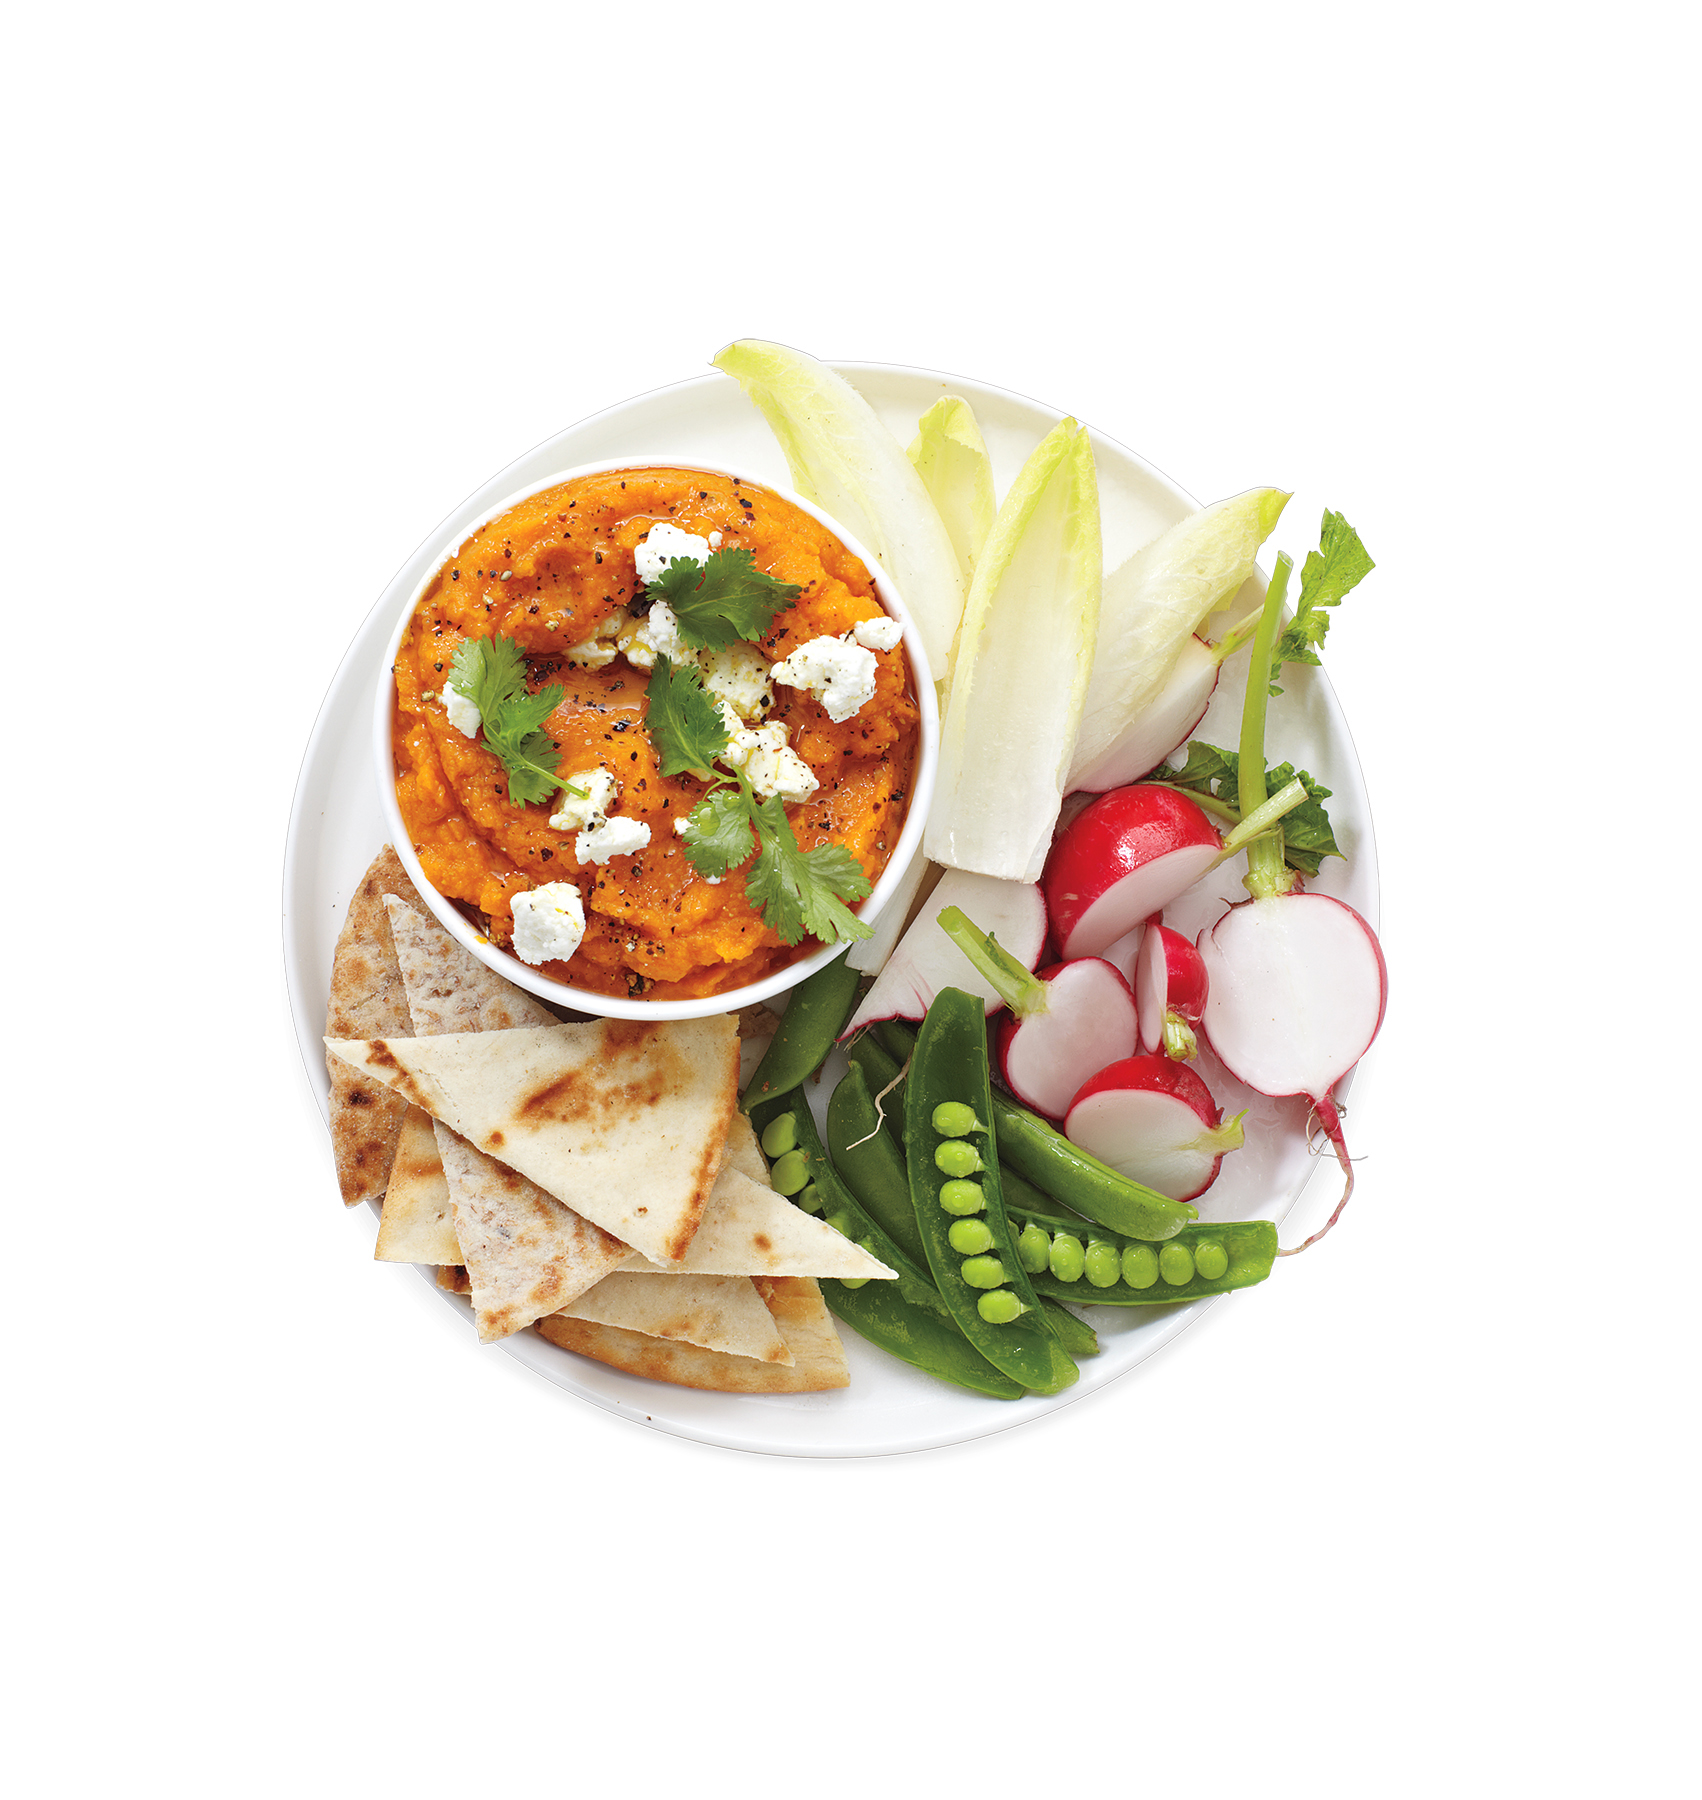 Creamy Carrot Dip With Crudités